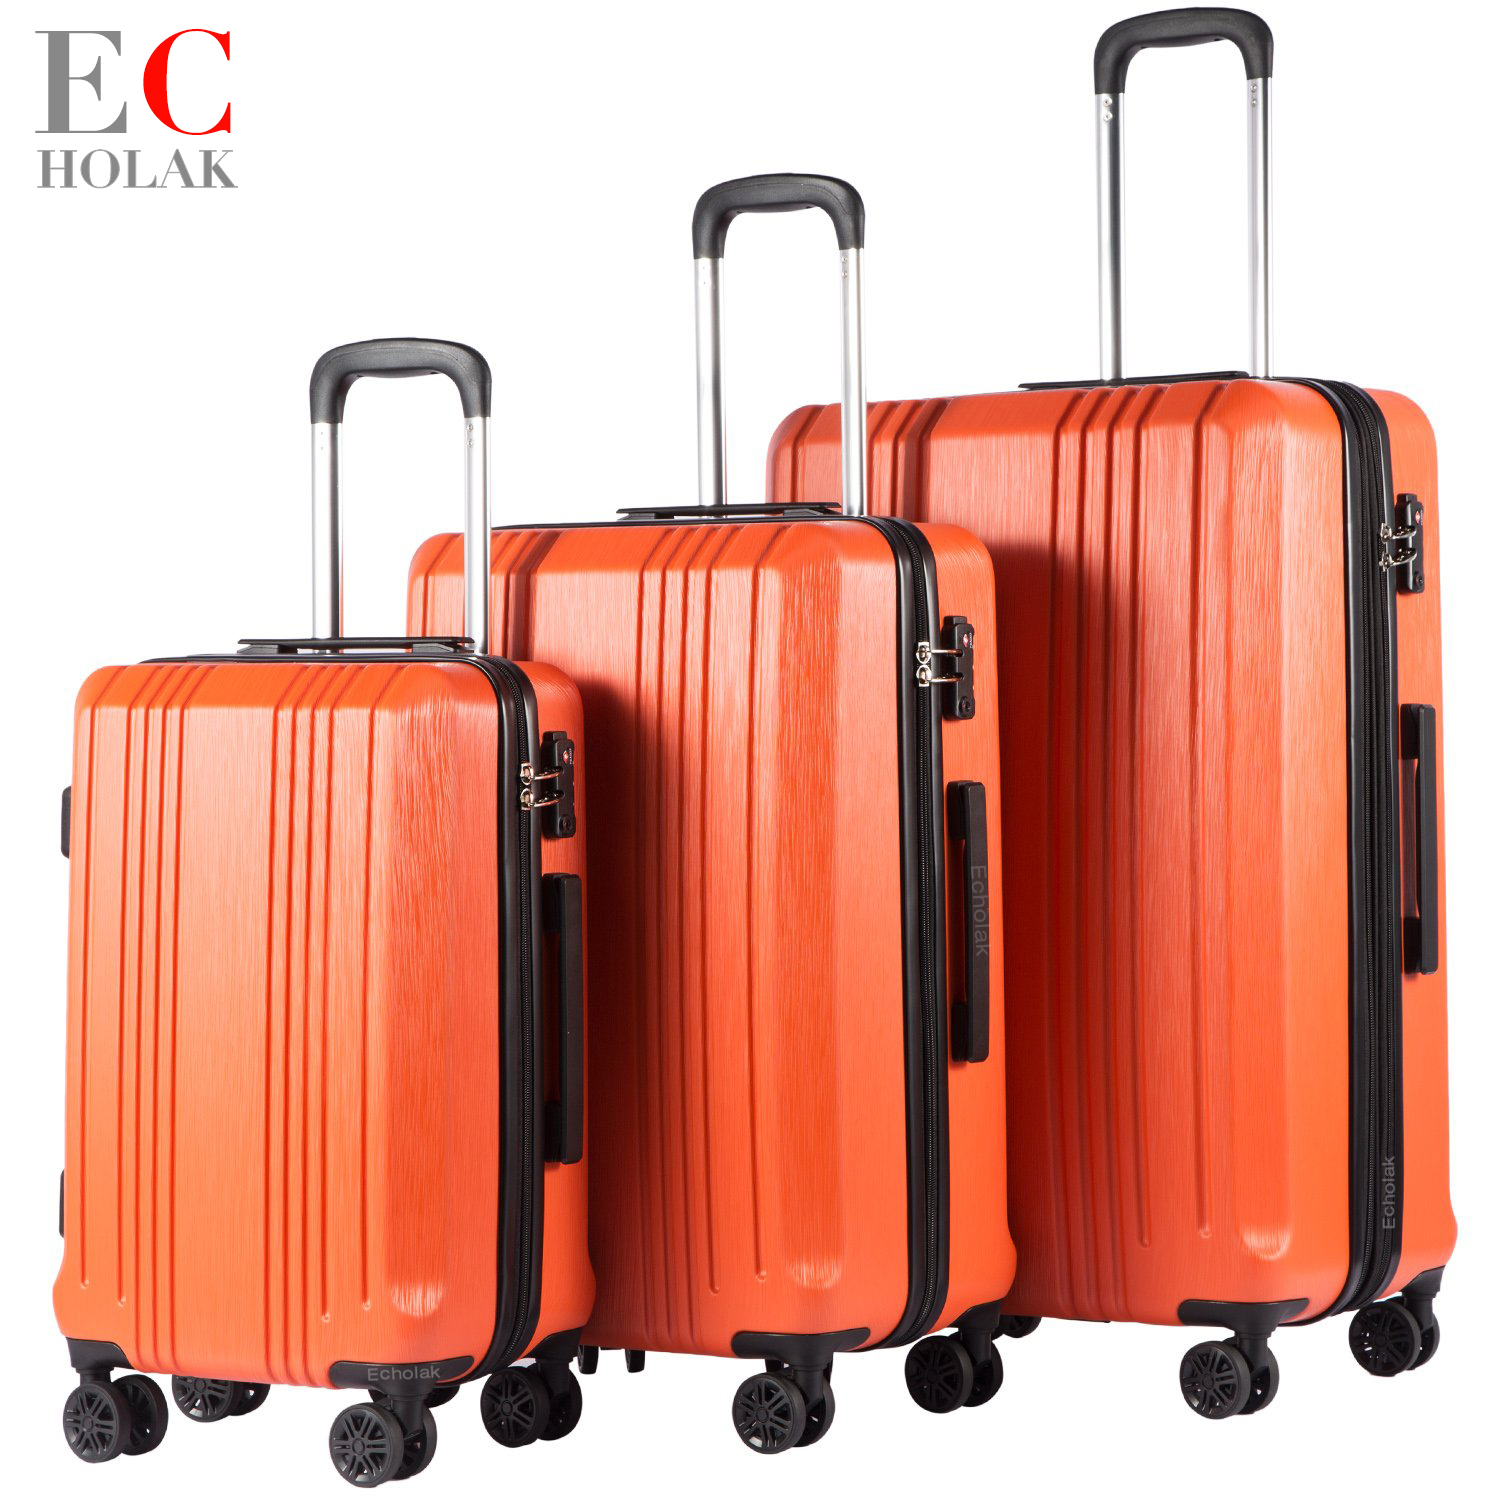 827dbbe2753d US $64.79 46% OFF|3 Piece Set Travel Tolley Case Luggage Suitcase Spinner  Mute Wheels Rolling Luggage women men 20 24 28inch-in Hardside Luggage from  ...